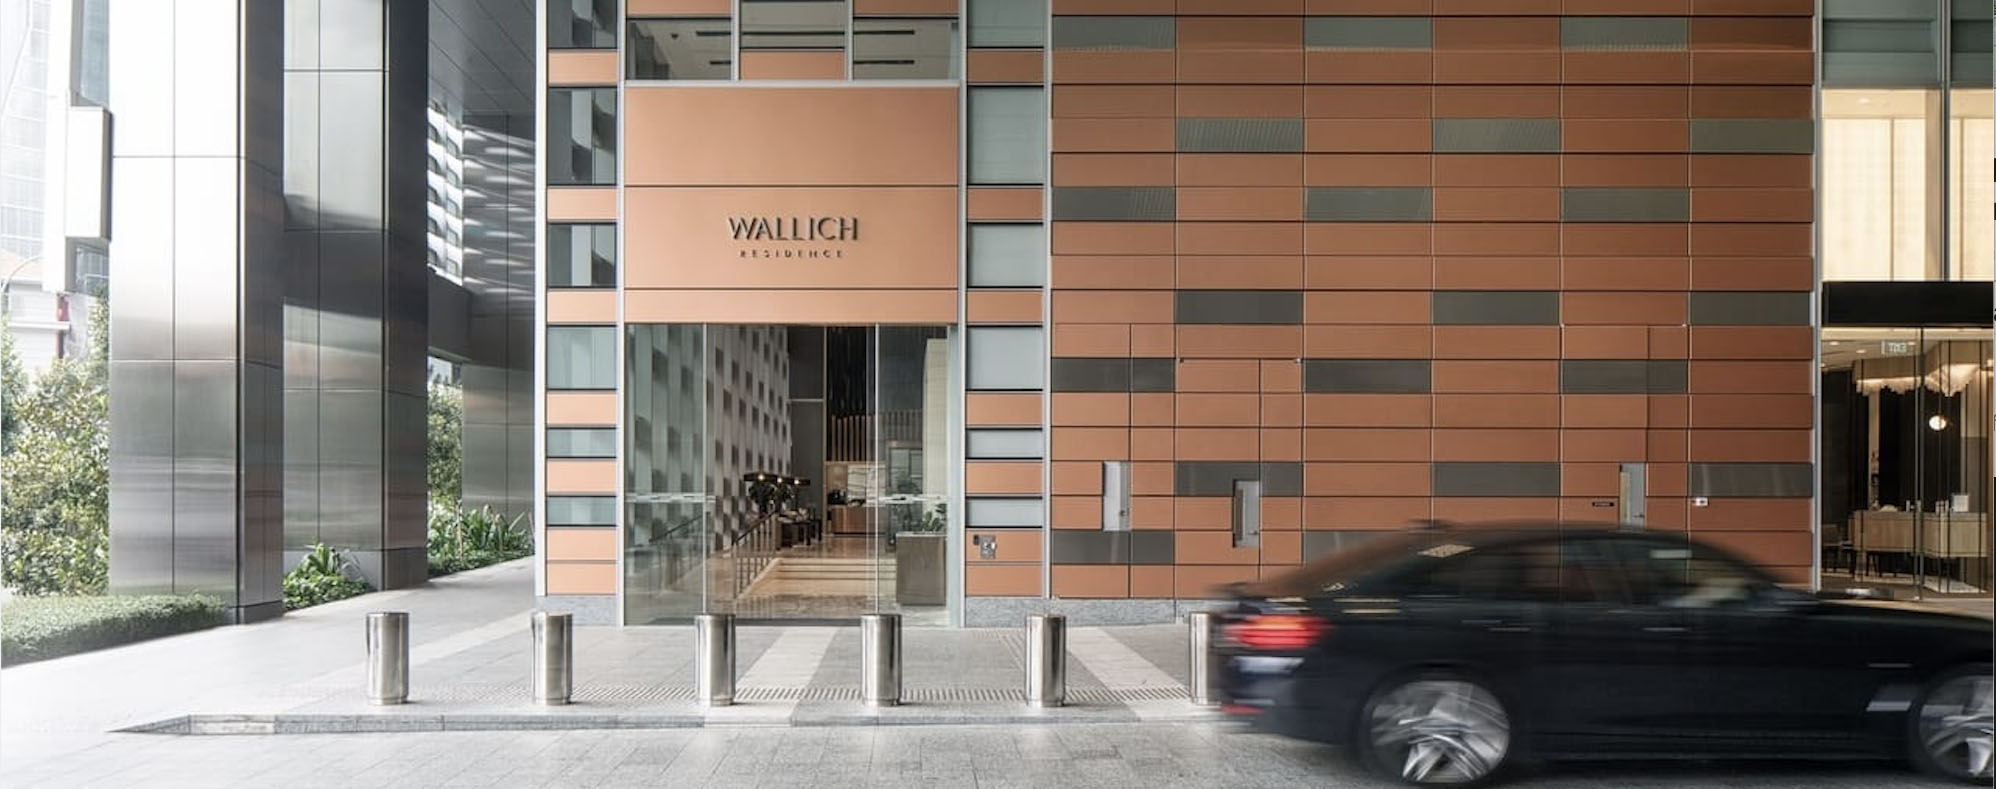 Wallich Residence Arrival Singapore